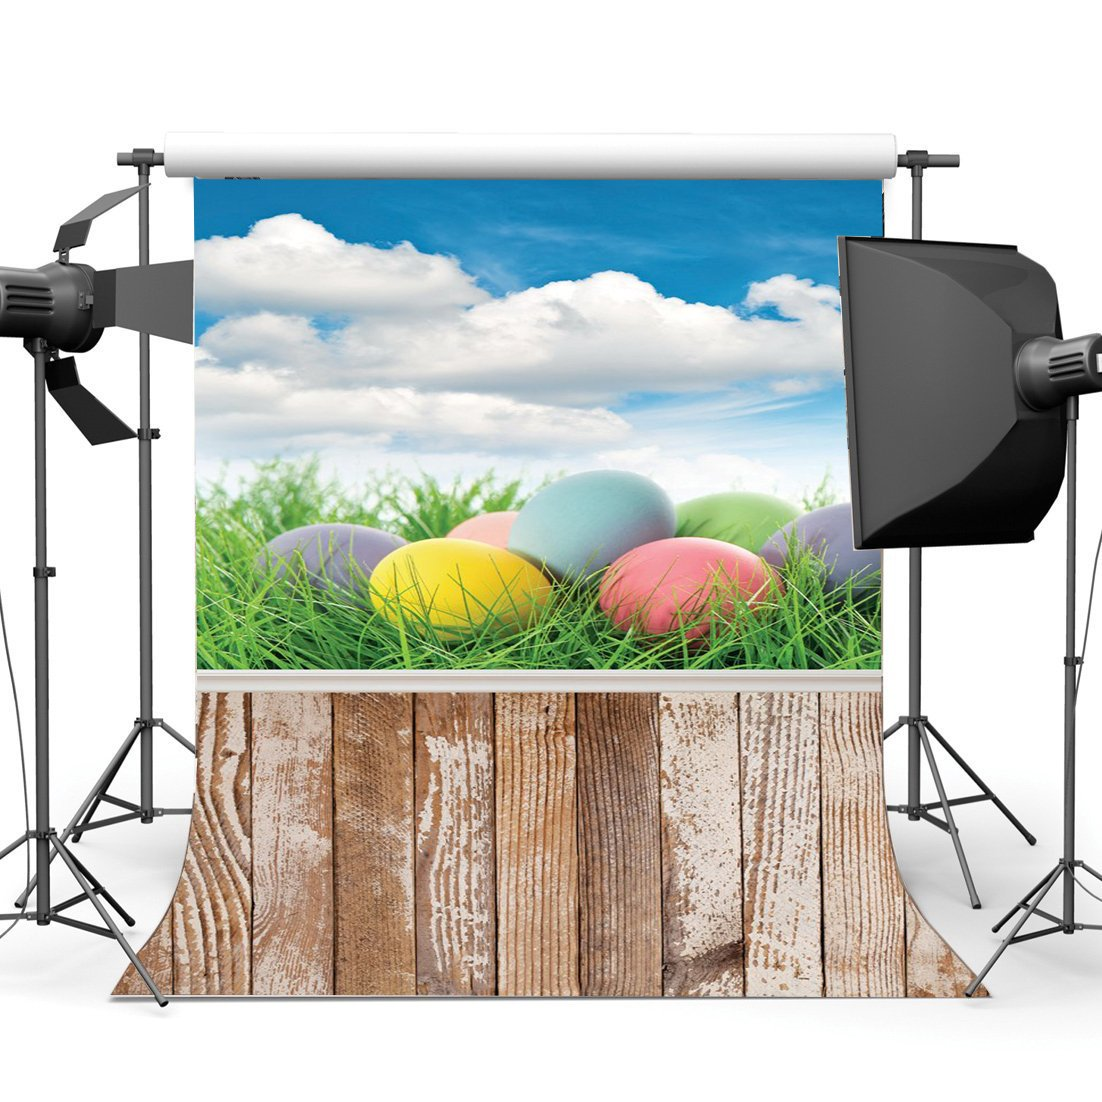 Happy Easter Eggs Backdrop Green Grass Meadow Blue Sky White Cloud Stripes Wood Plank Nature Spring Background